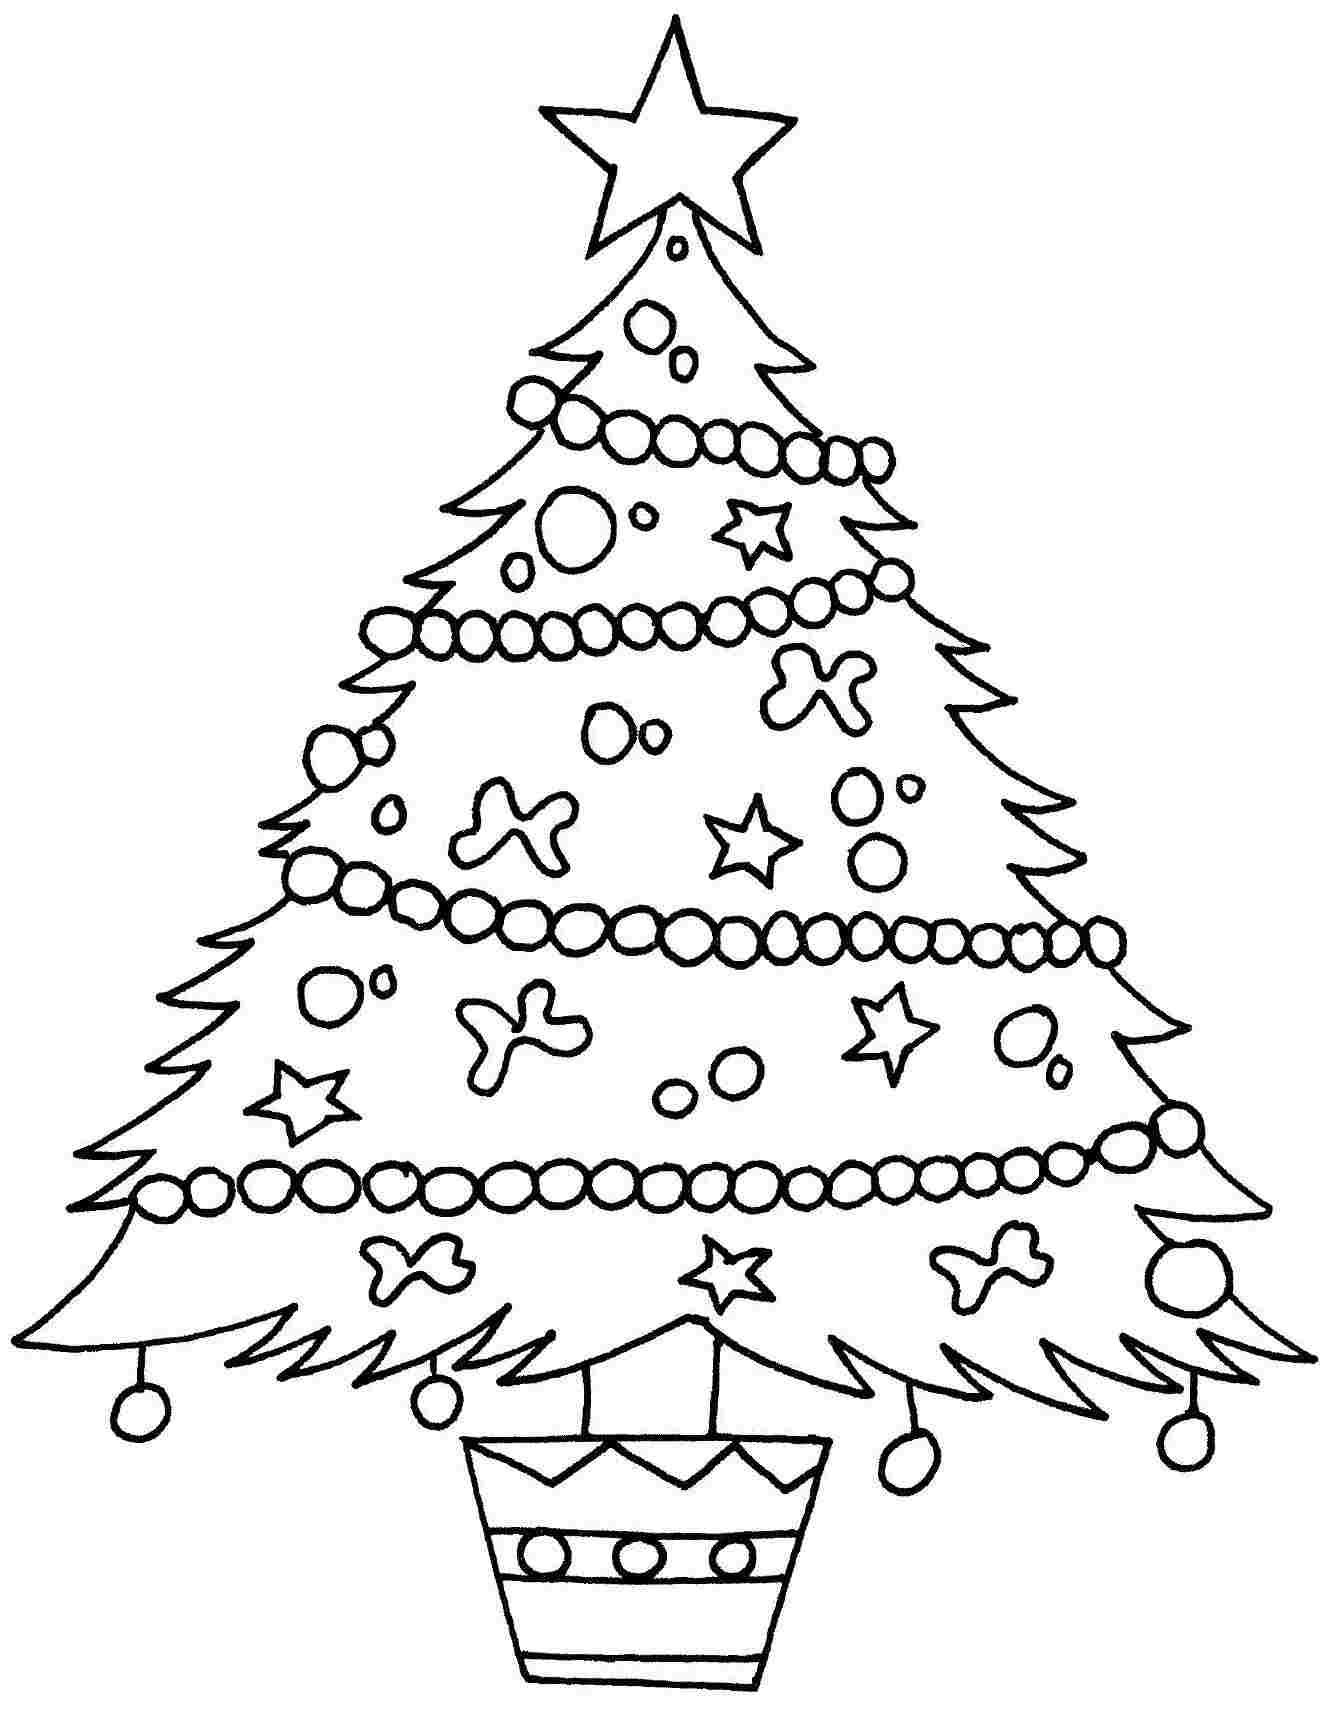 Merry Christmas Tree Coloring Page With Template 1 Work Stuff Pinterest